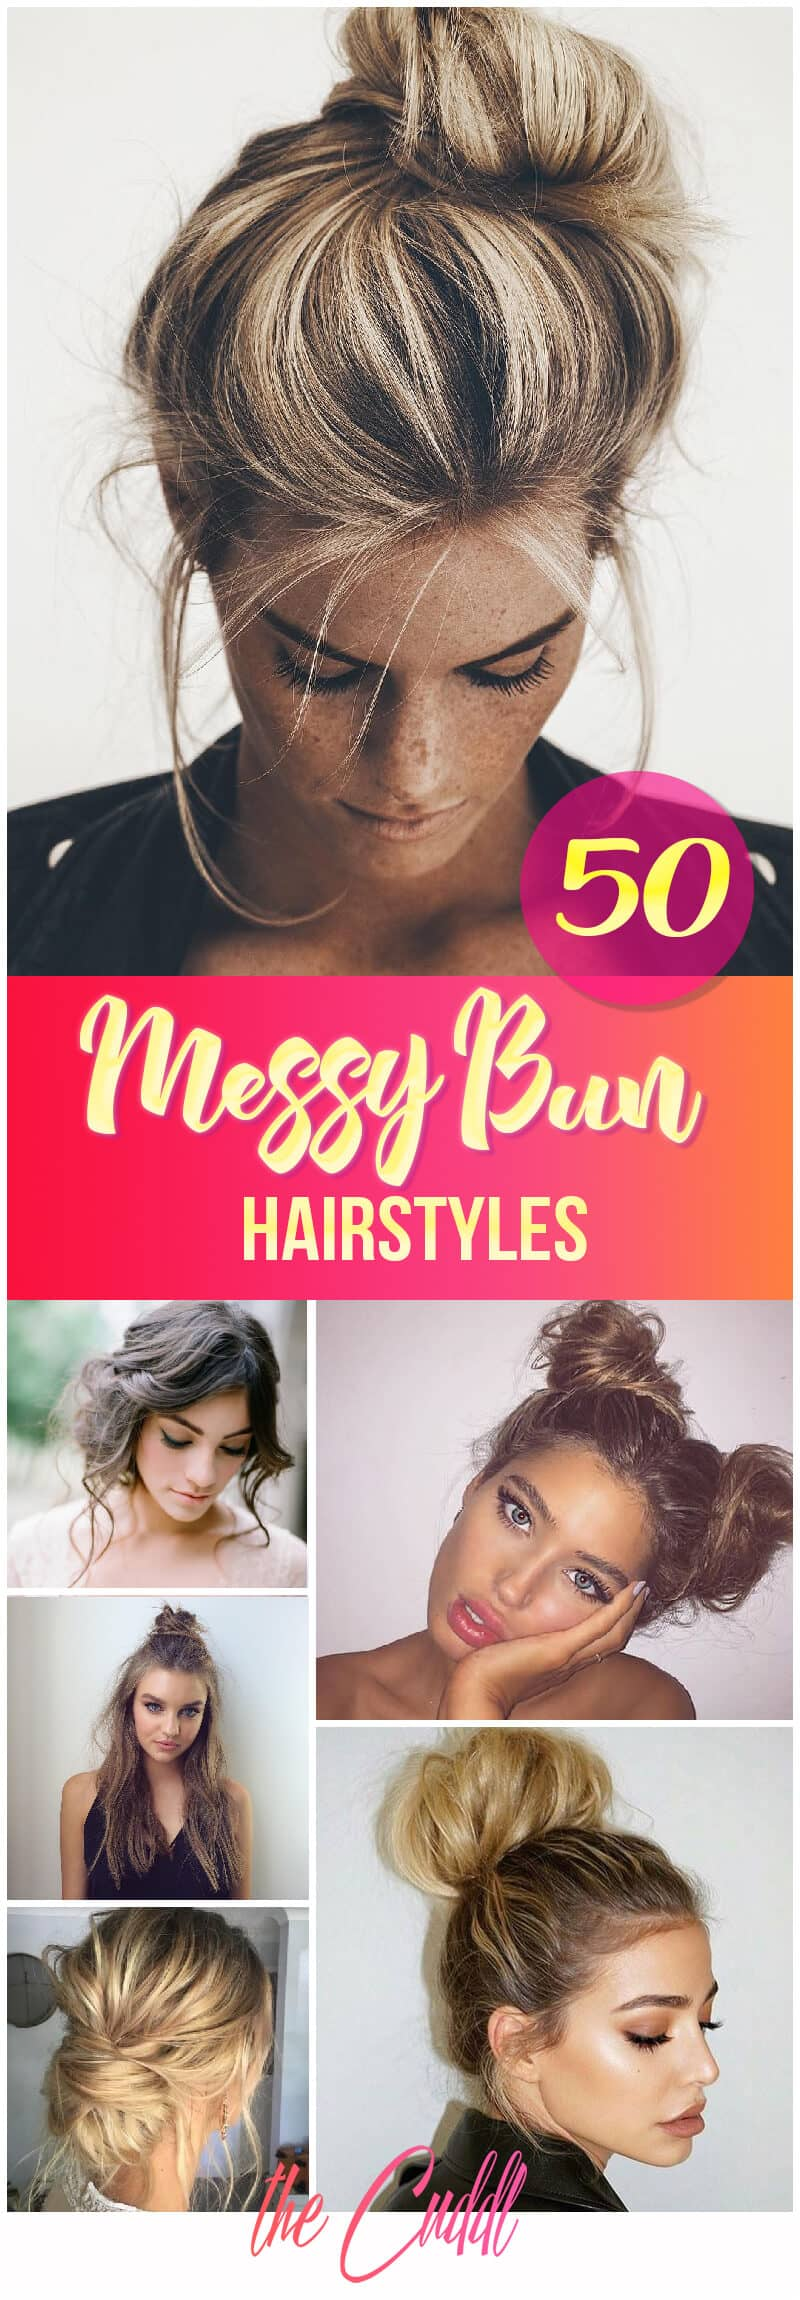 50 Chic Messy Bun Hairstyles